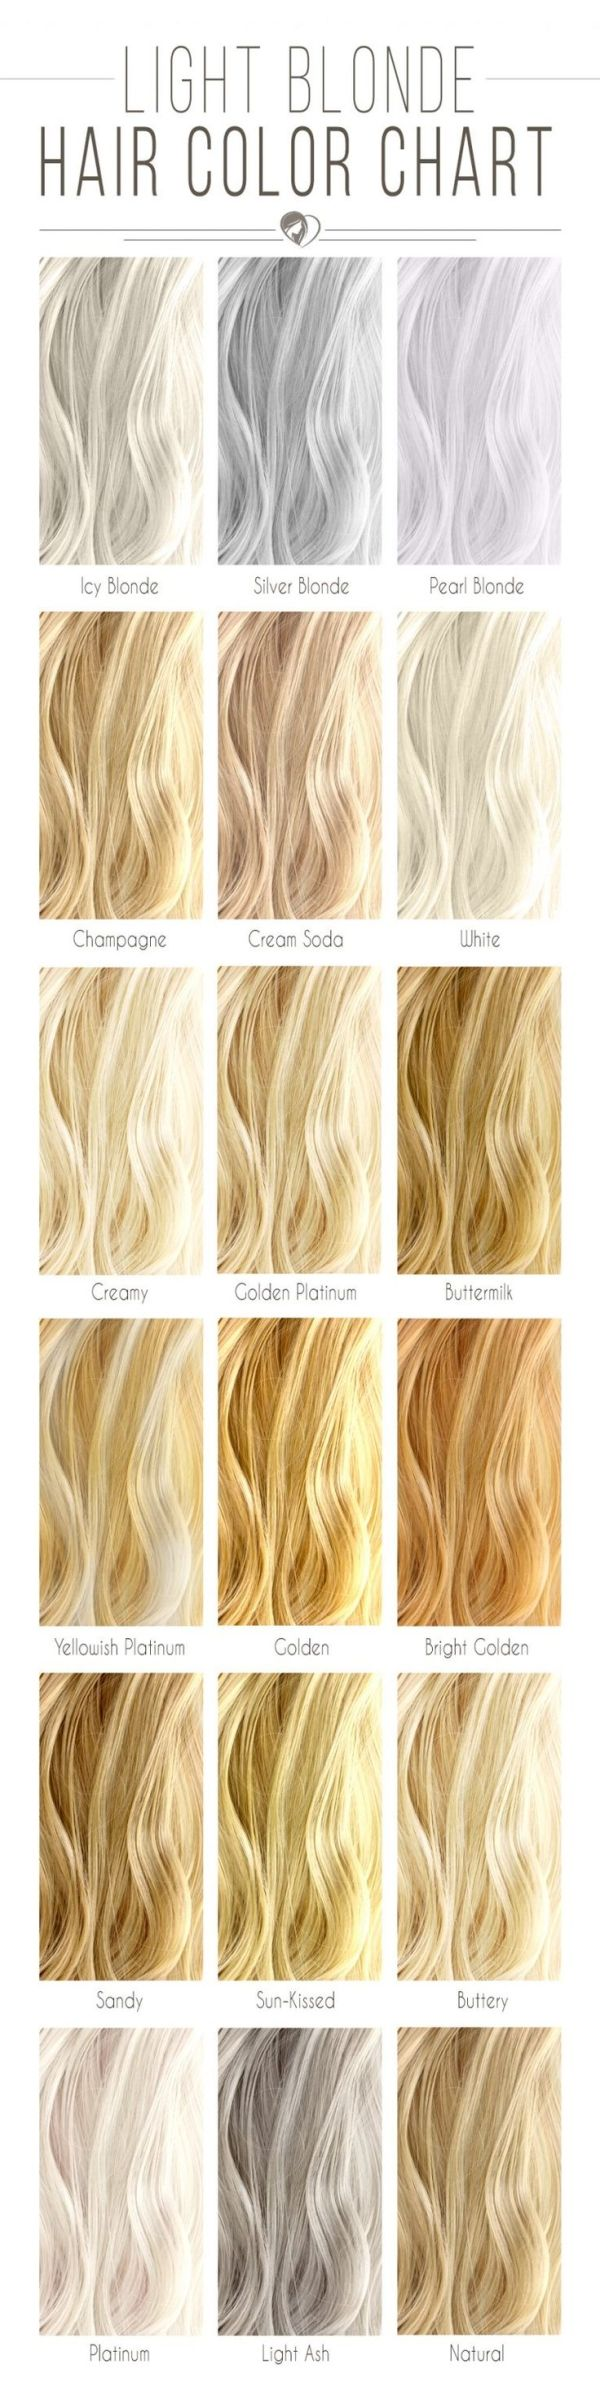 Light Blonde Hair Color Chart Blondehair By Adele Blonde Hair Color Chart Hair Chart Blonde Hair Color